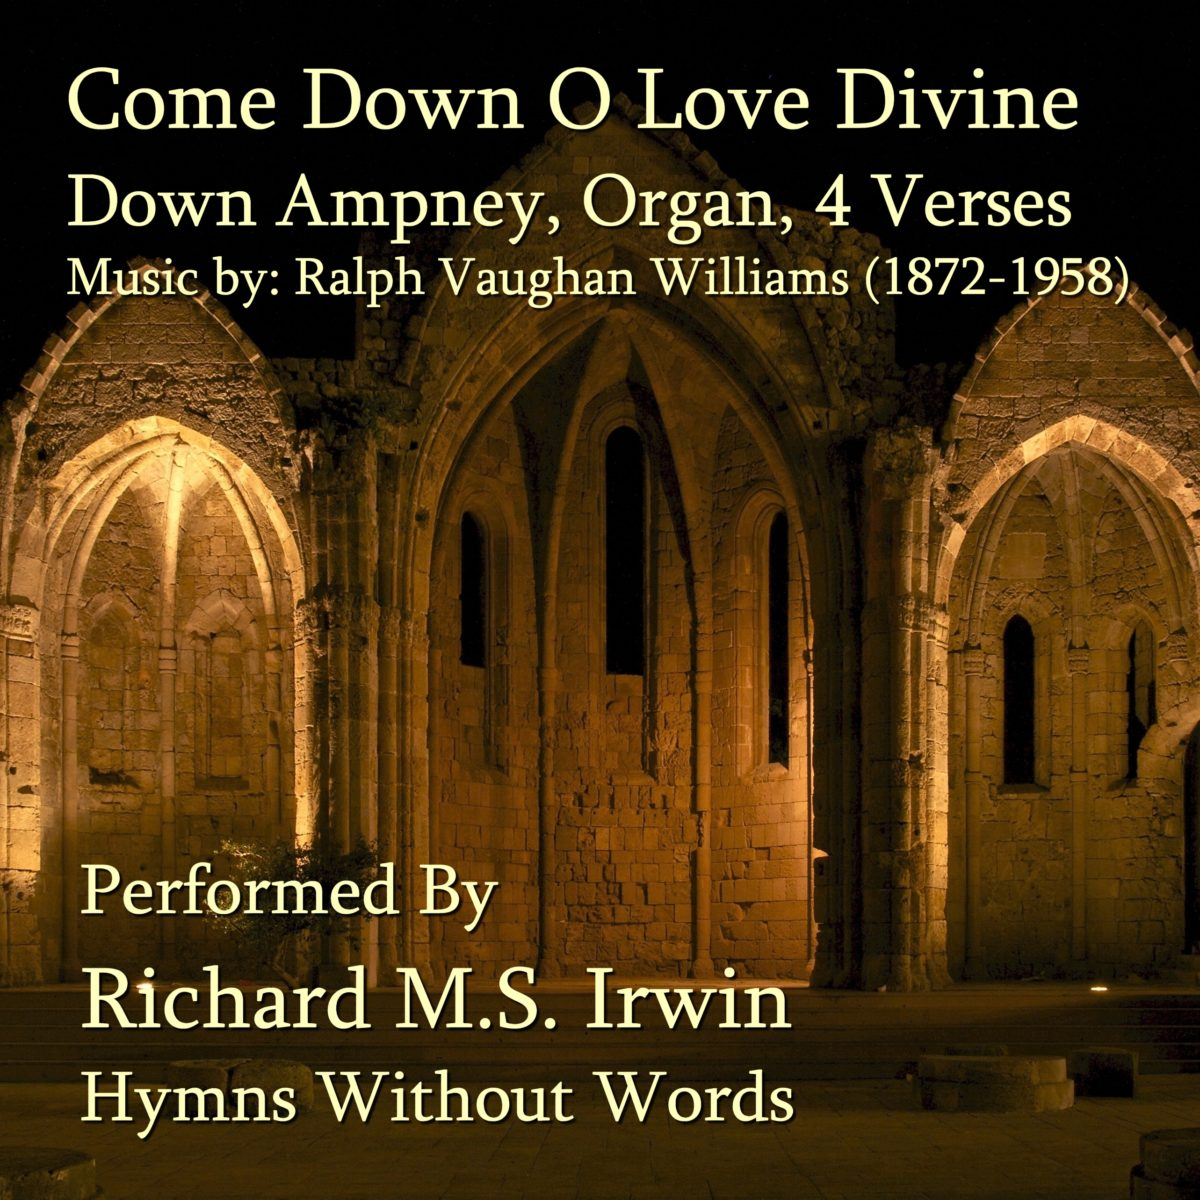 Come Down O Love Divine (Down Ampney, Organ, 4 Verses)